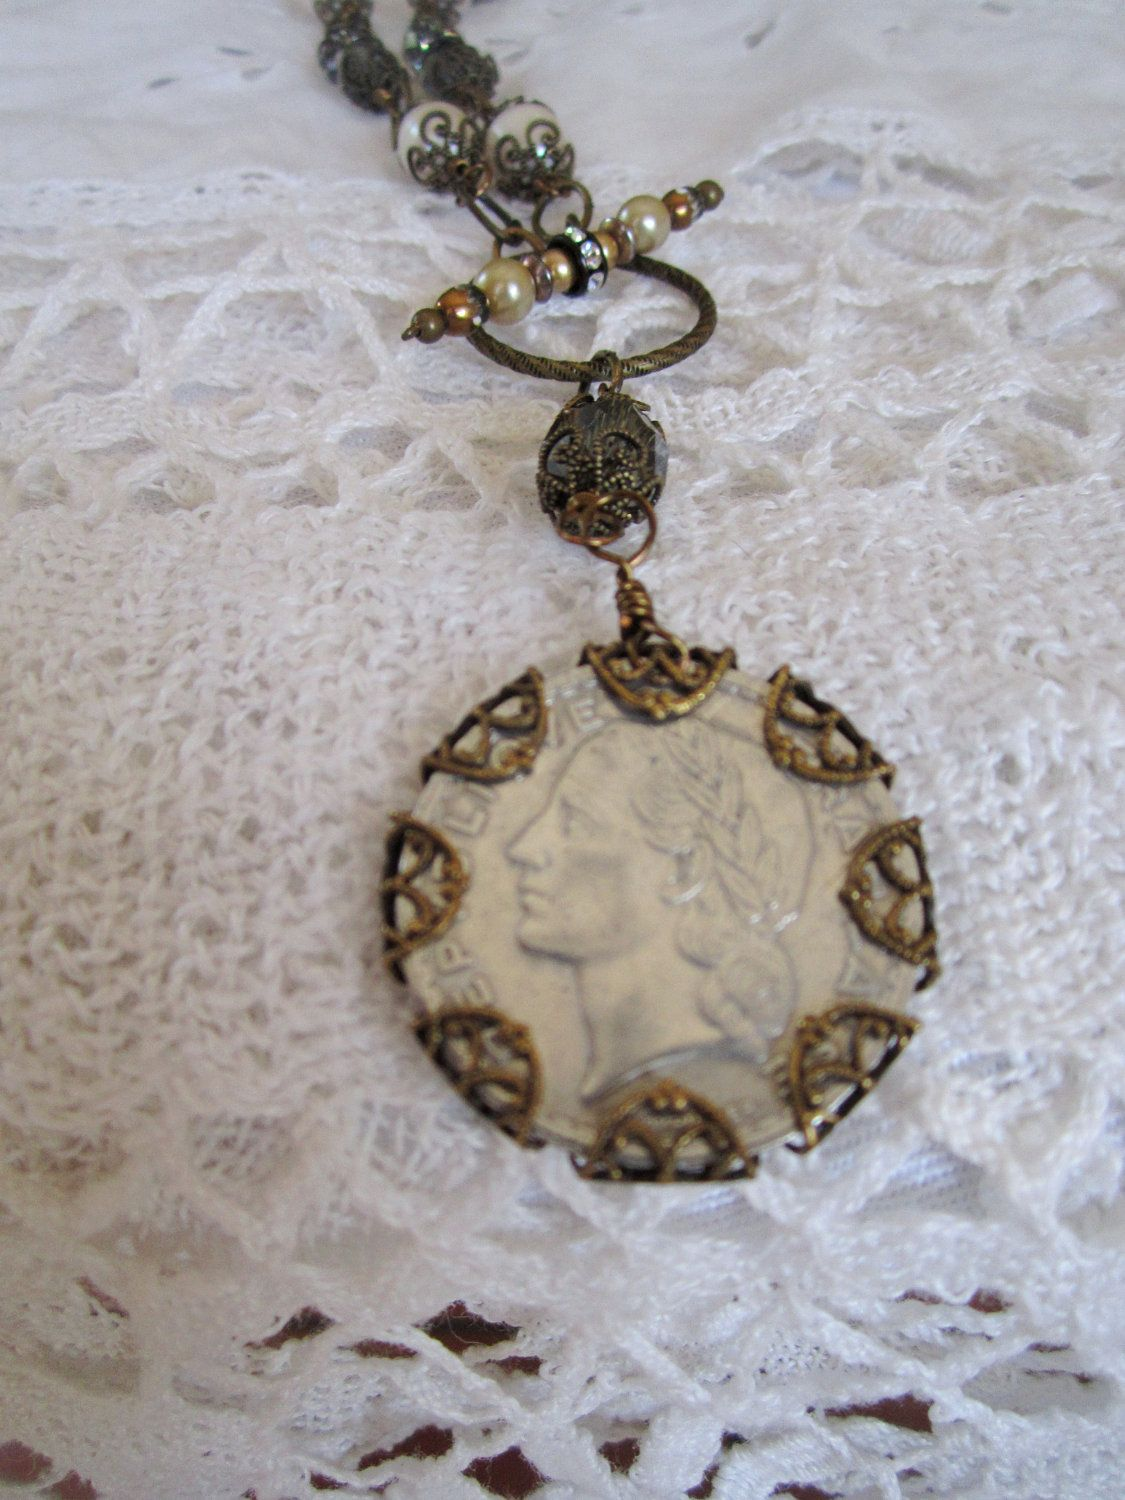 great idea to wrap a vintage coin in filigree...can't believe I didn't think about this before